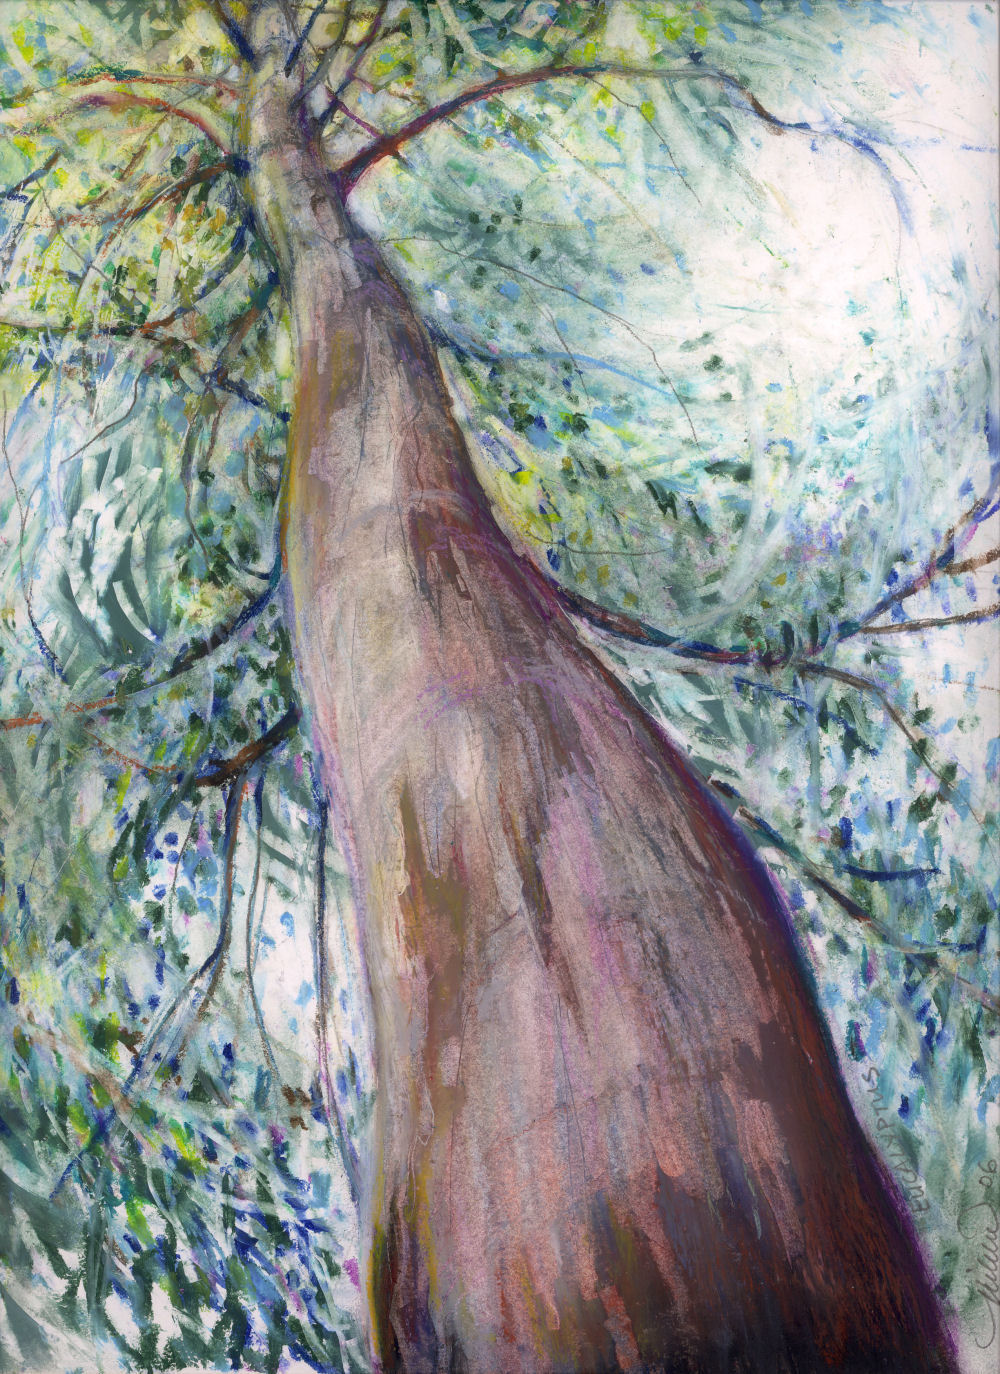 Eucalyptus Tree, Queensland, Australia 14 x 11 inches Oil Pastels on paper, framed size 26 x 22 inches